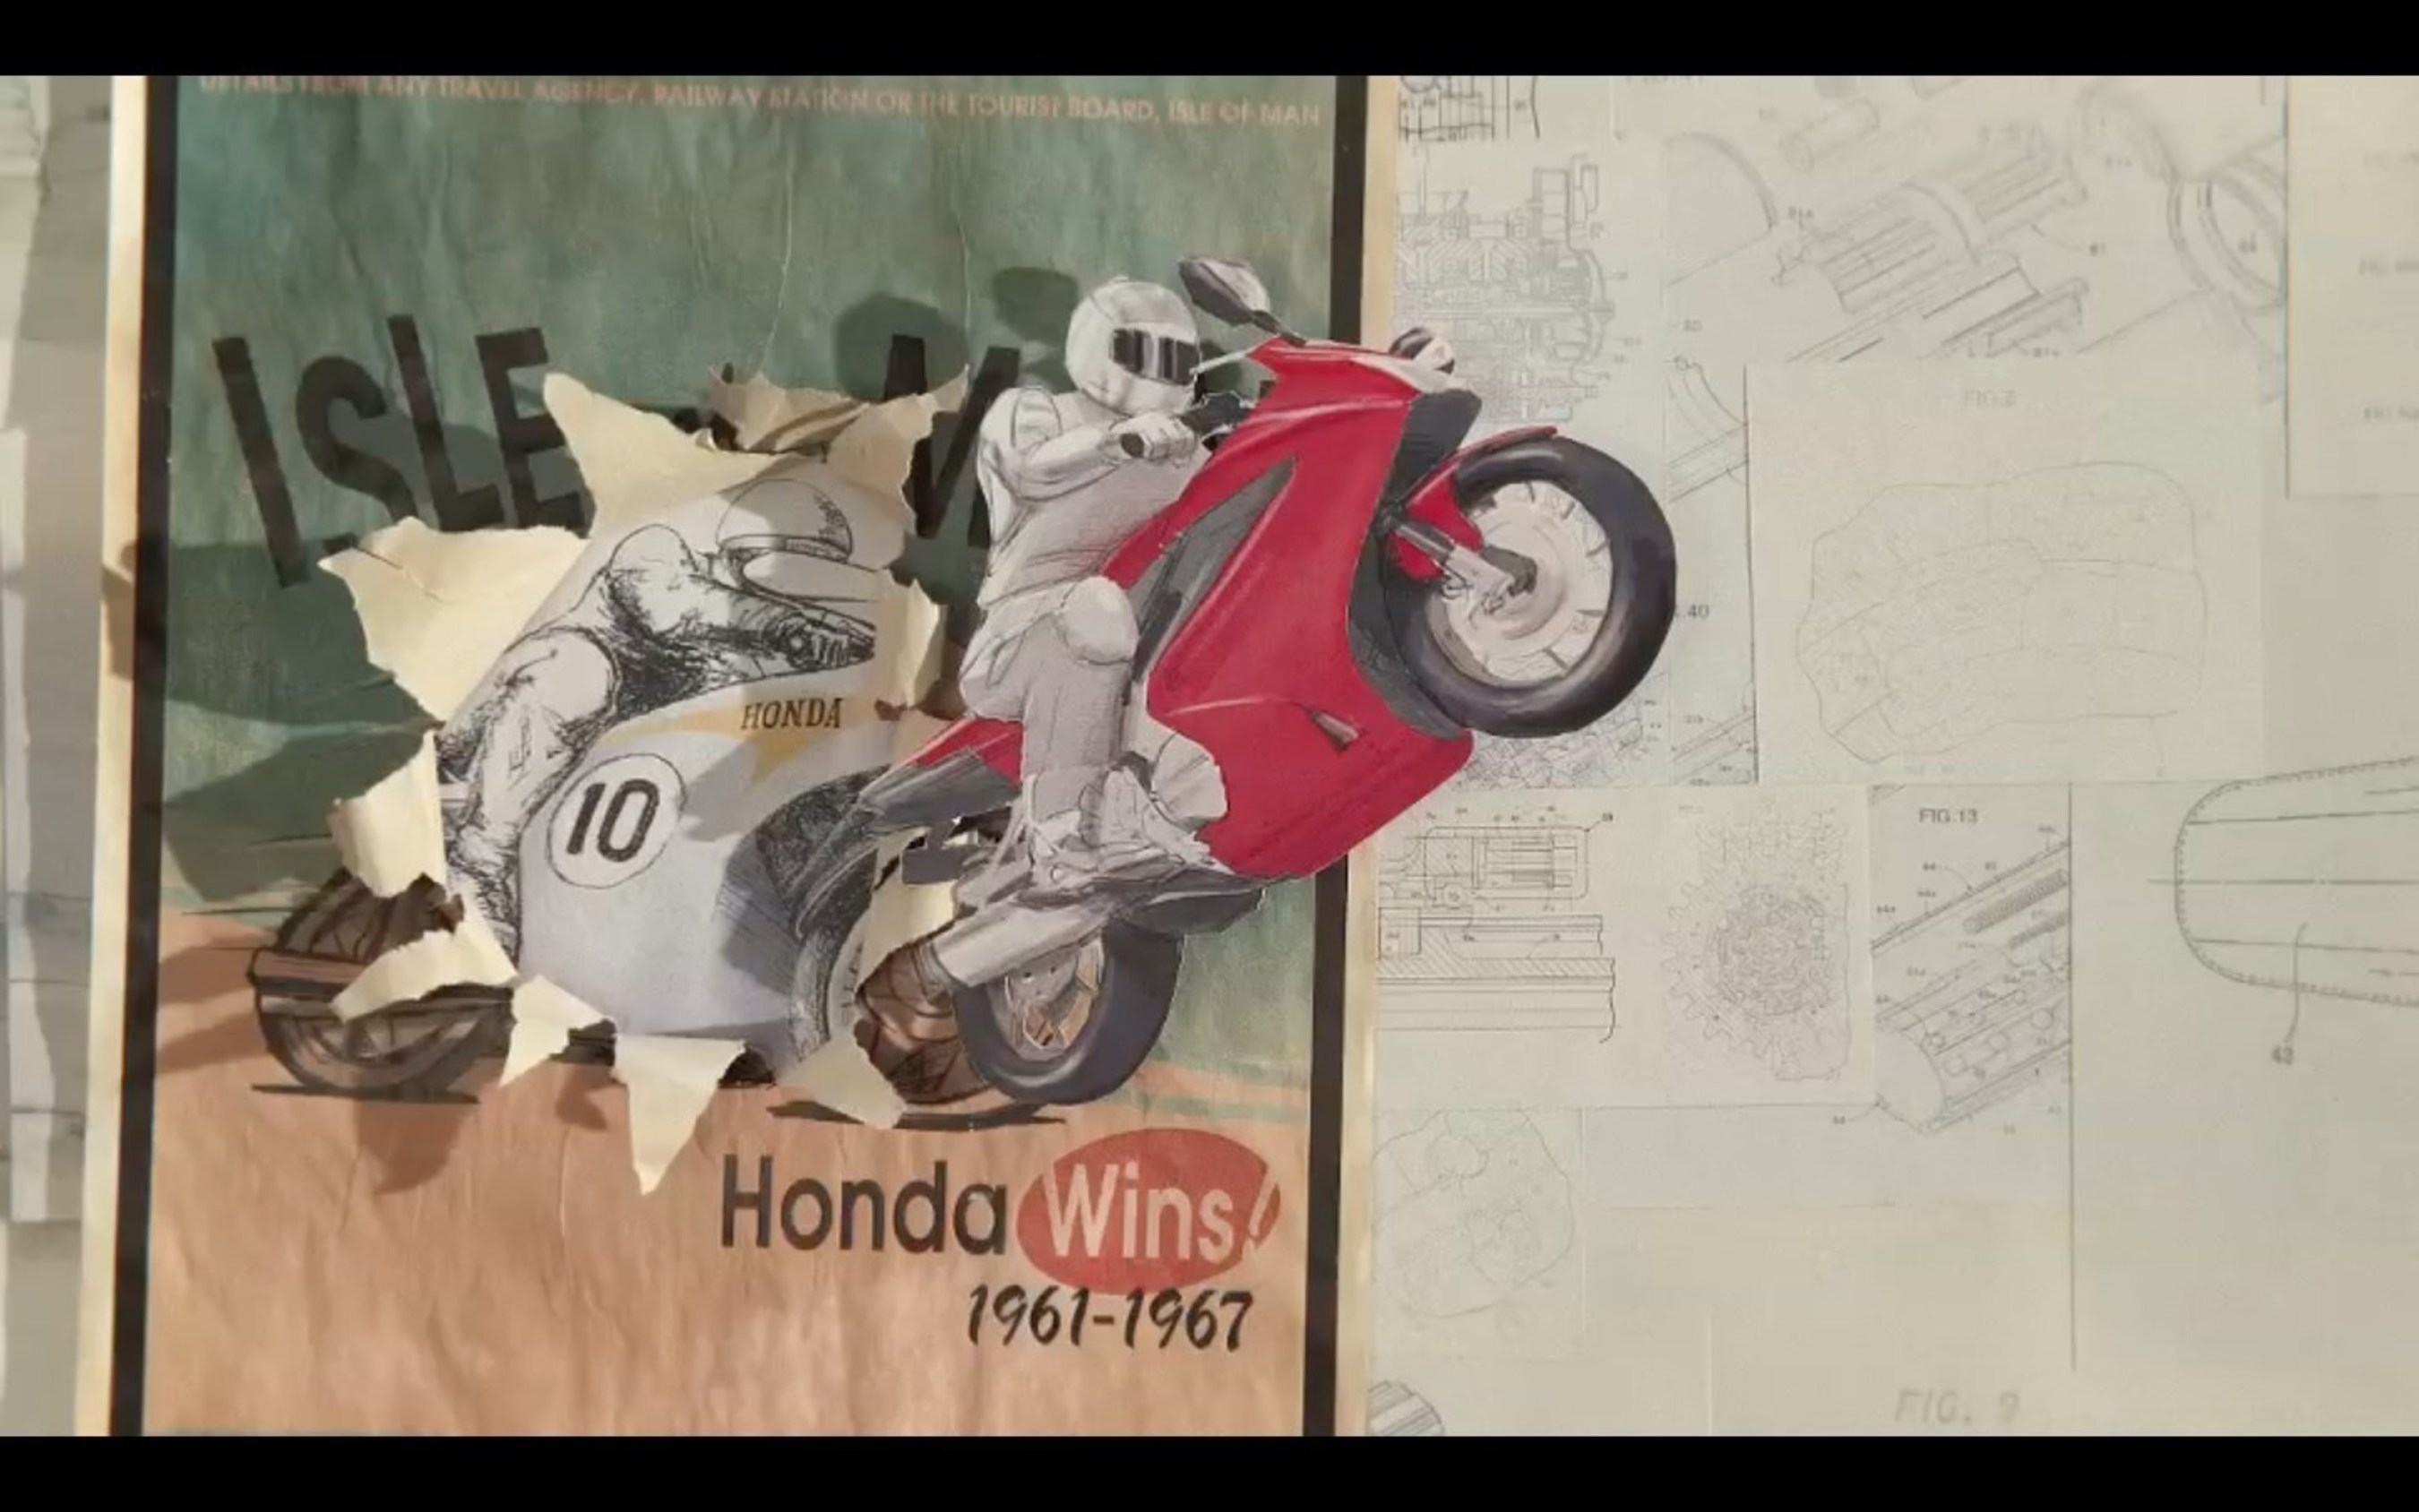 Honda Brings 'The Power of Dreams' to Life With Two-Minute Commercial Created by Stop-Motion Artist and Influencer PES